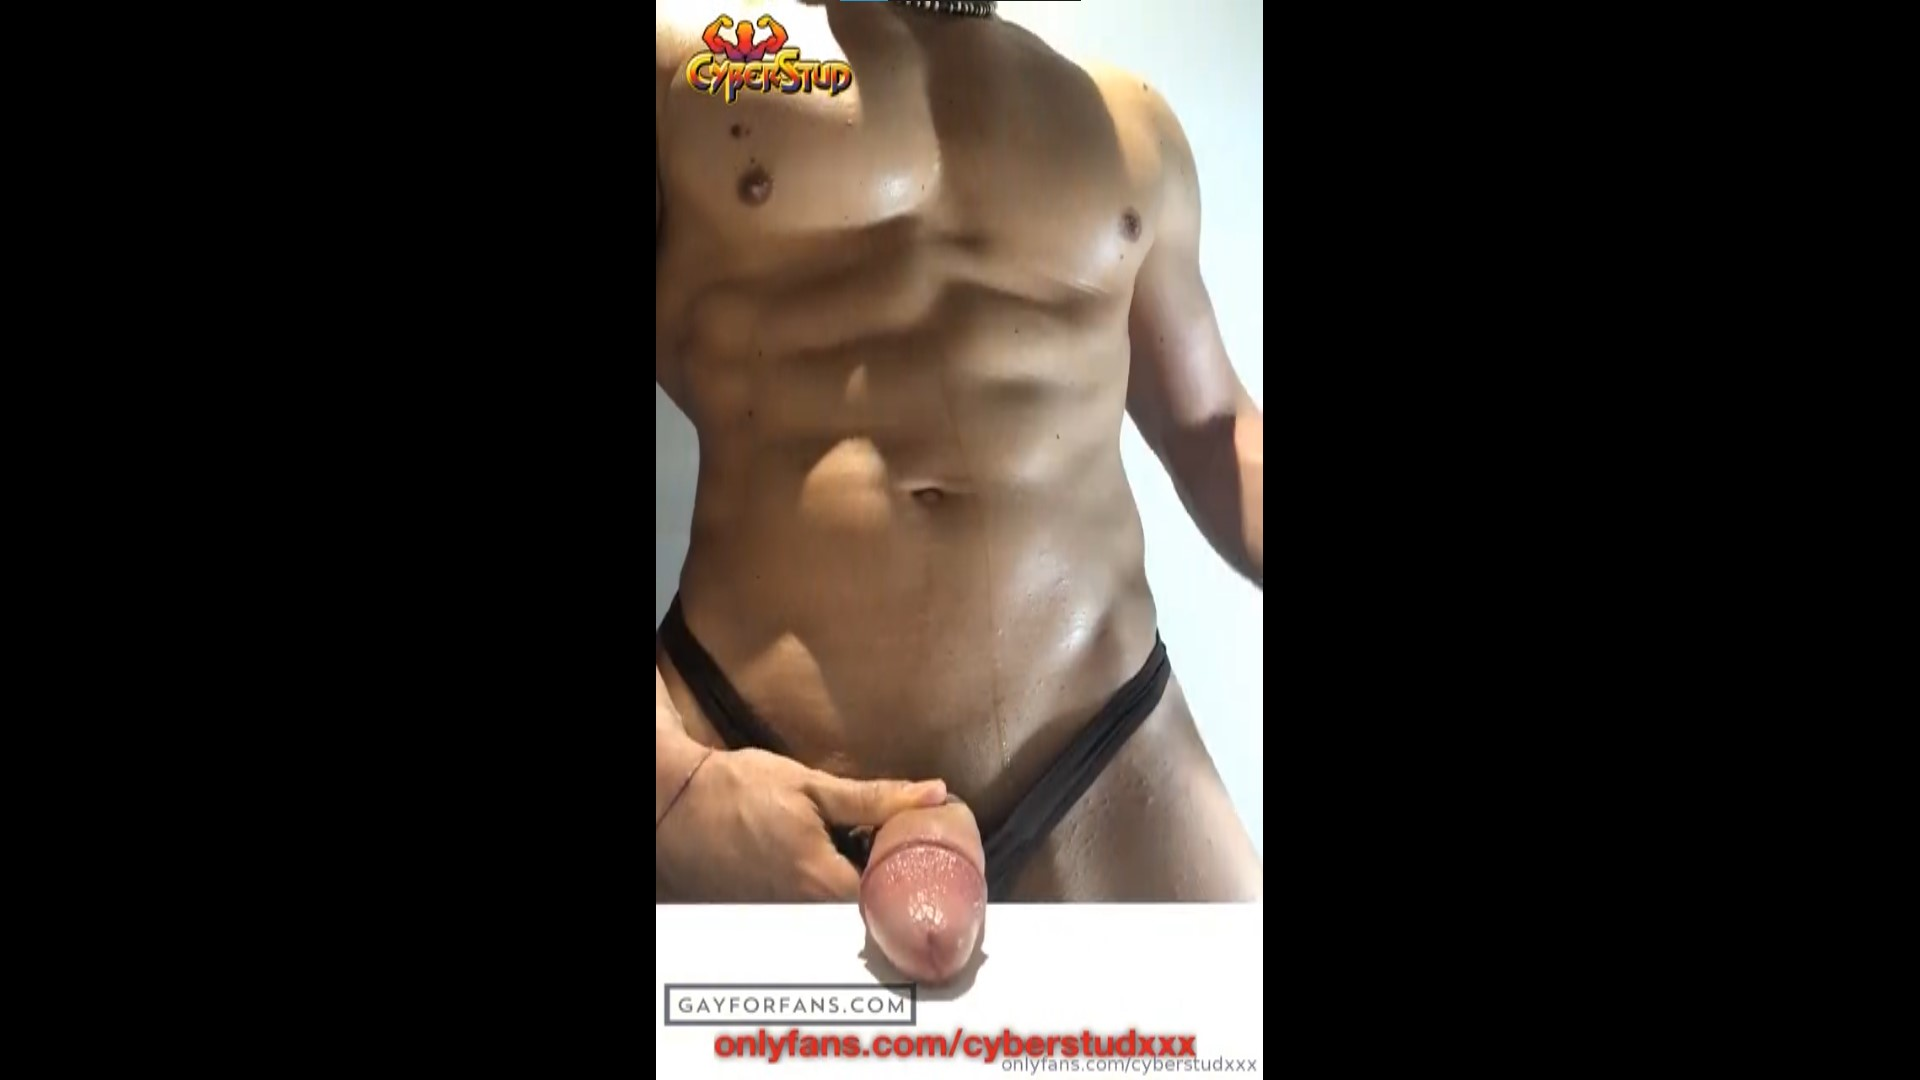 Showing off my muscles and jerking off - CyberStudXXX